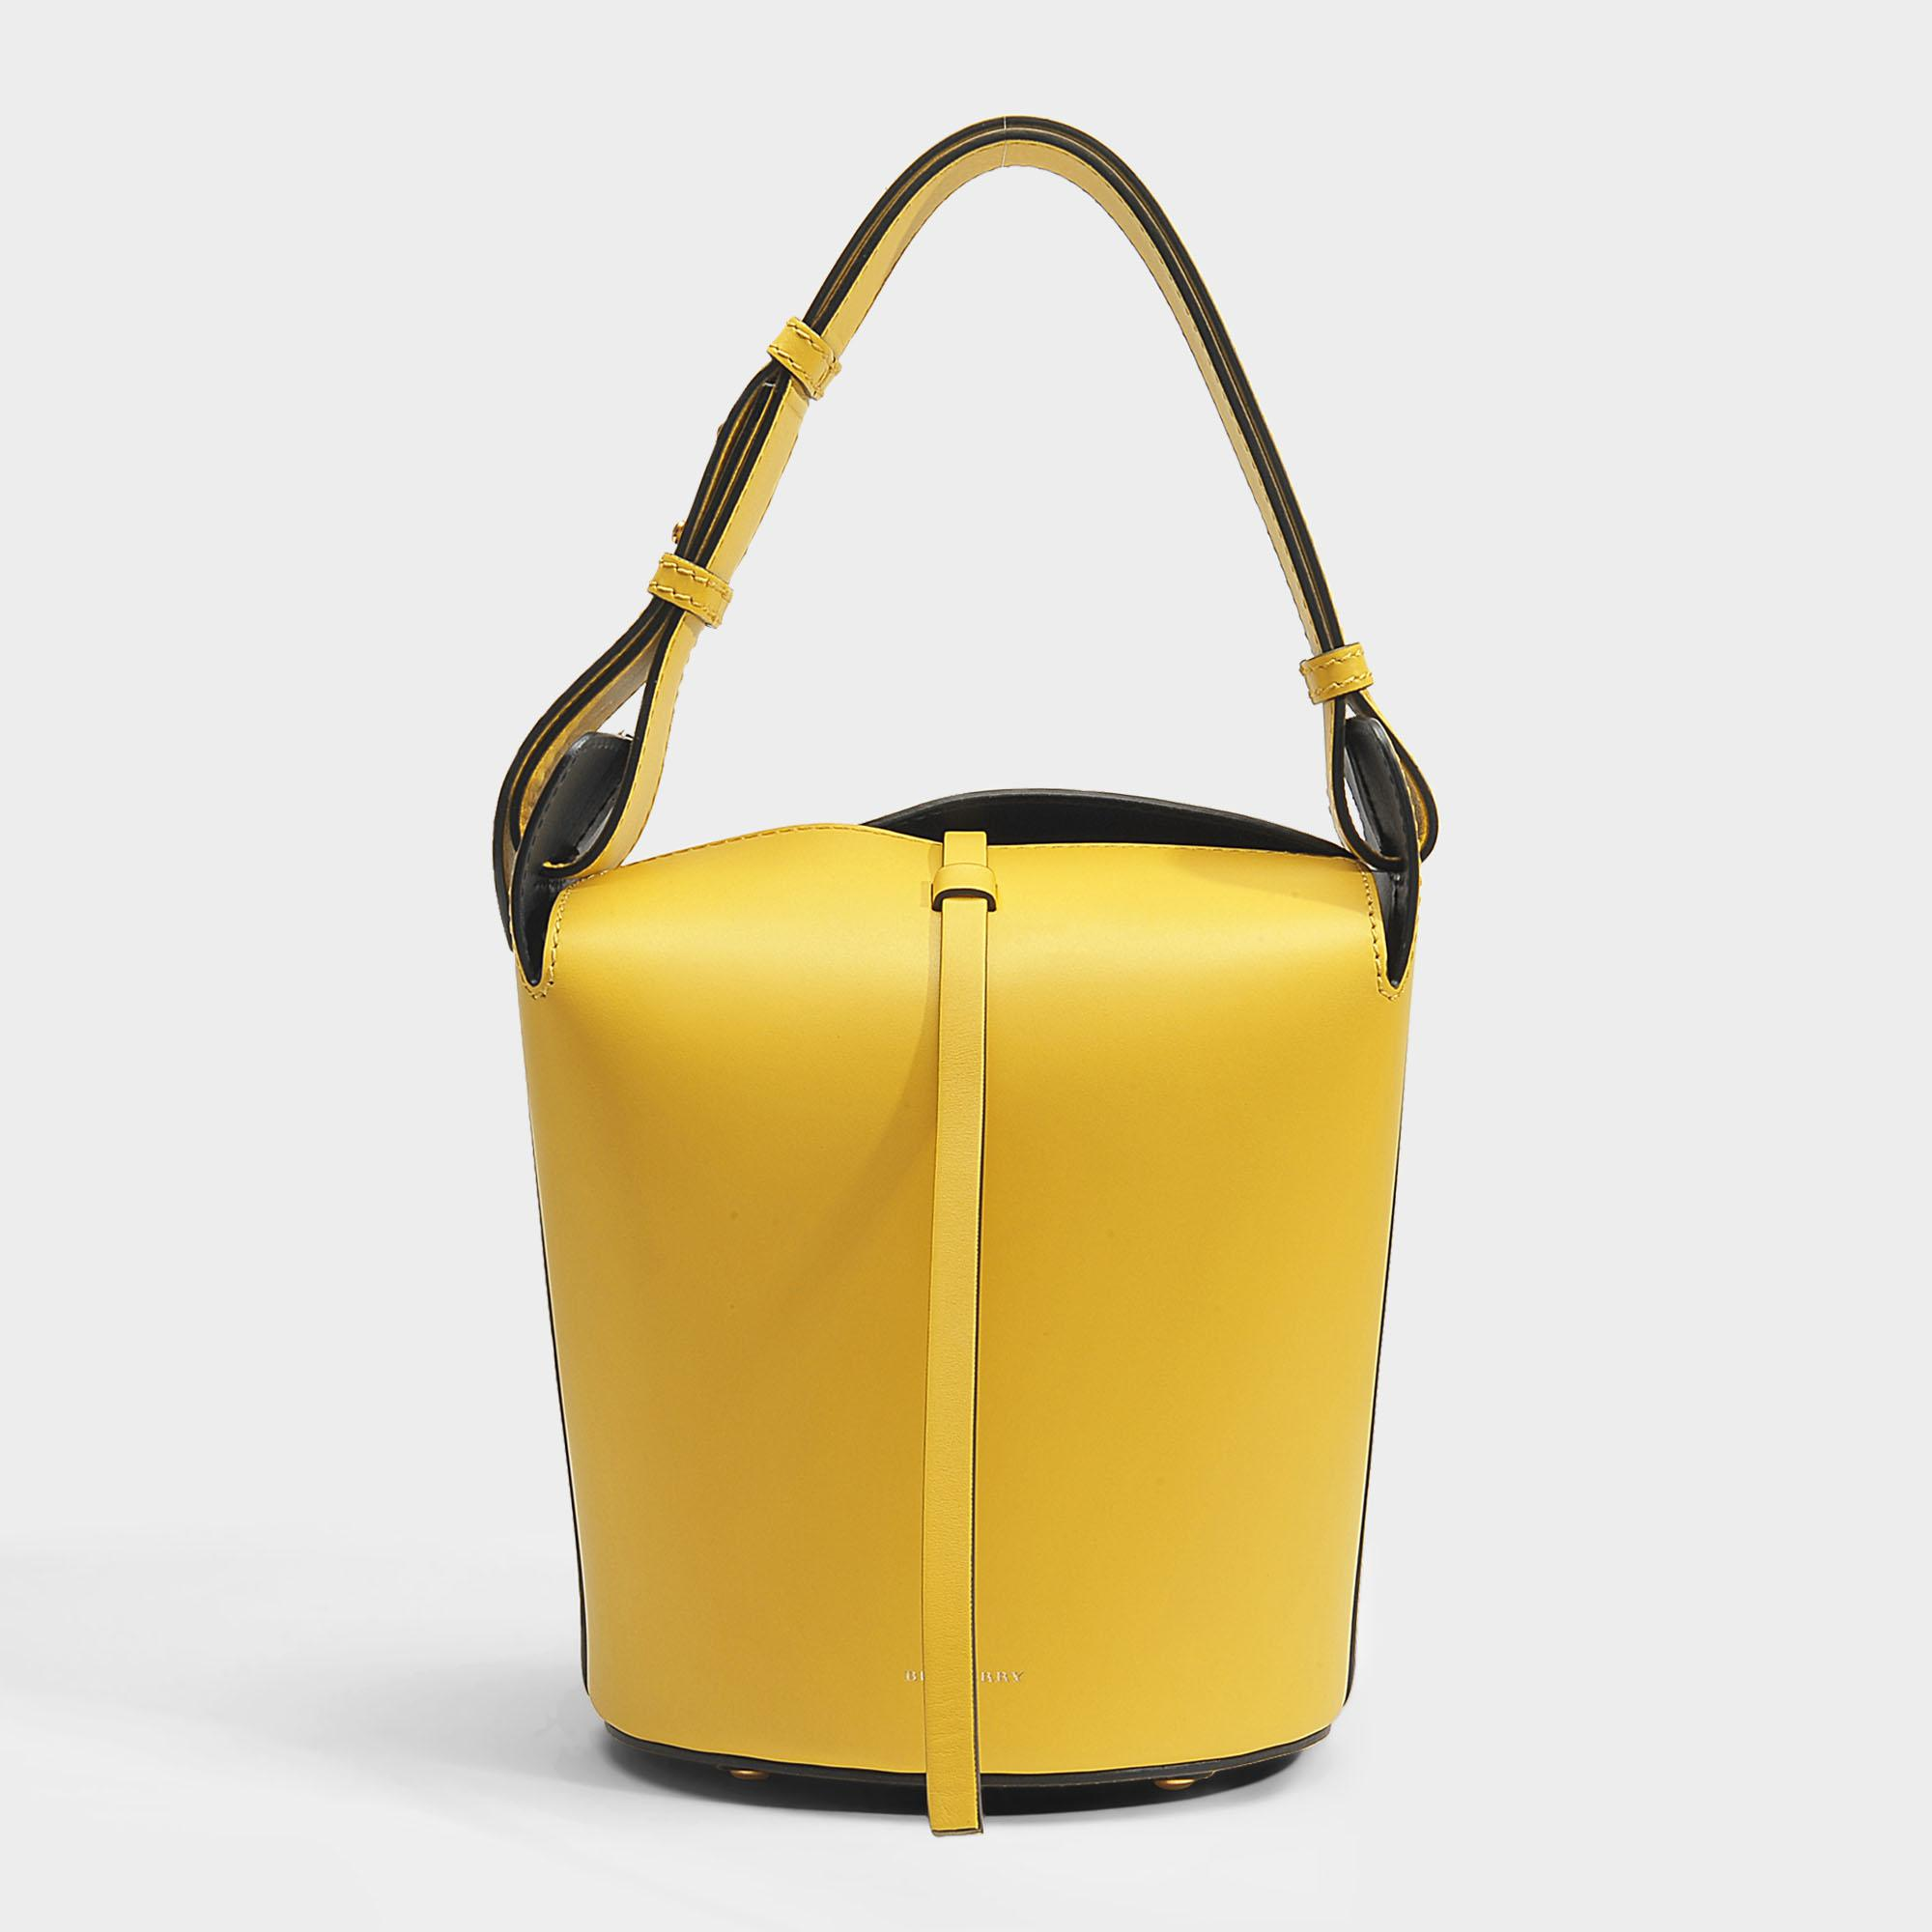 Small Bucket Bag in Bright Larch Yellow Supple Leather Burberry 7i0vMP7jM